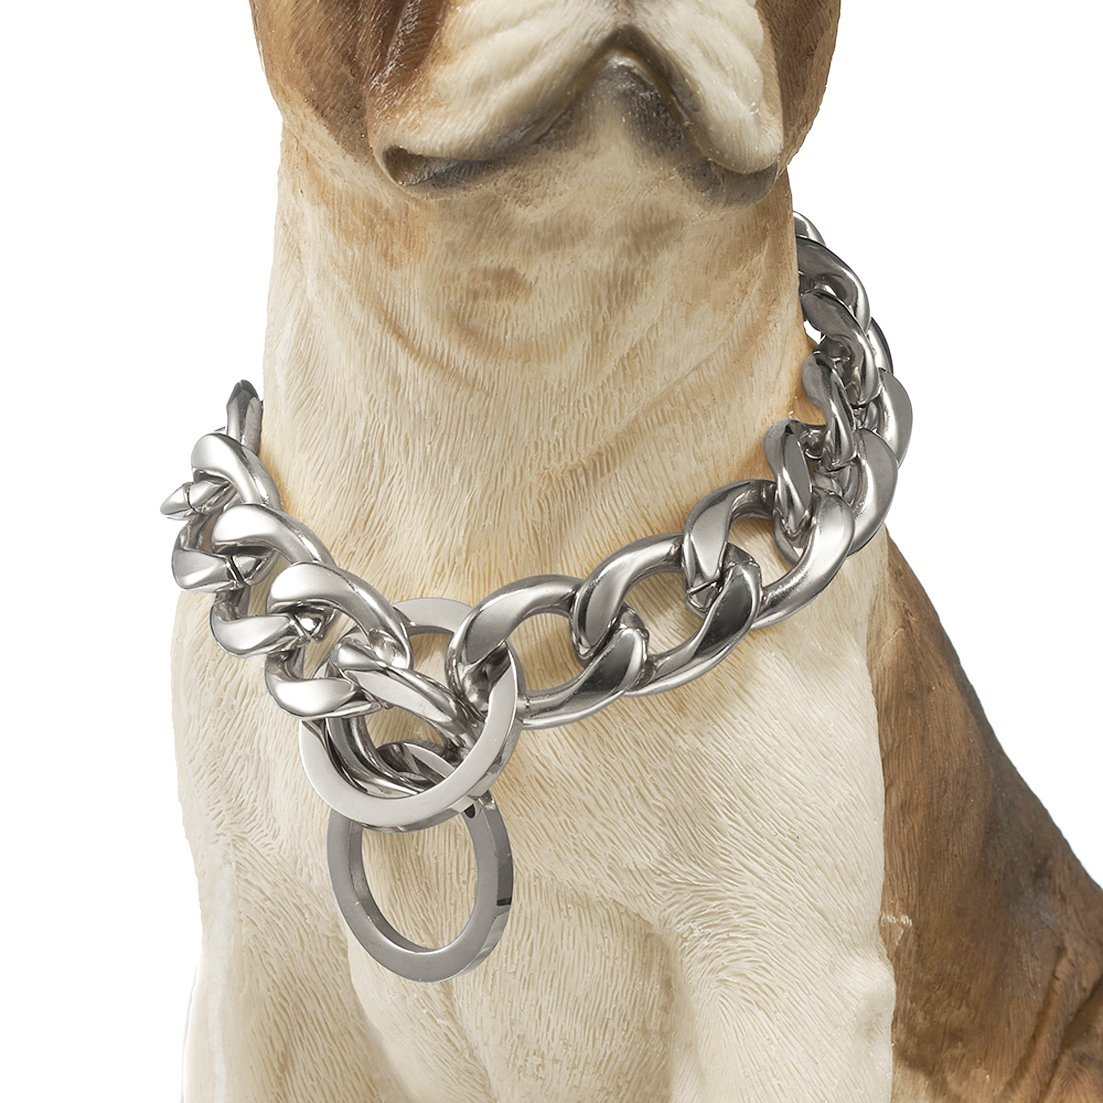 12\ GZMZC 13 15 19mm Strong Silver Tone 316L Stainless Steel NK Chain Link Dog Pet Choker Collar Necklace 12-36inch(12inches,19mm)